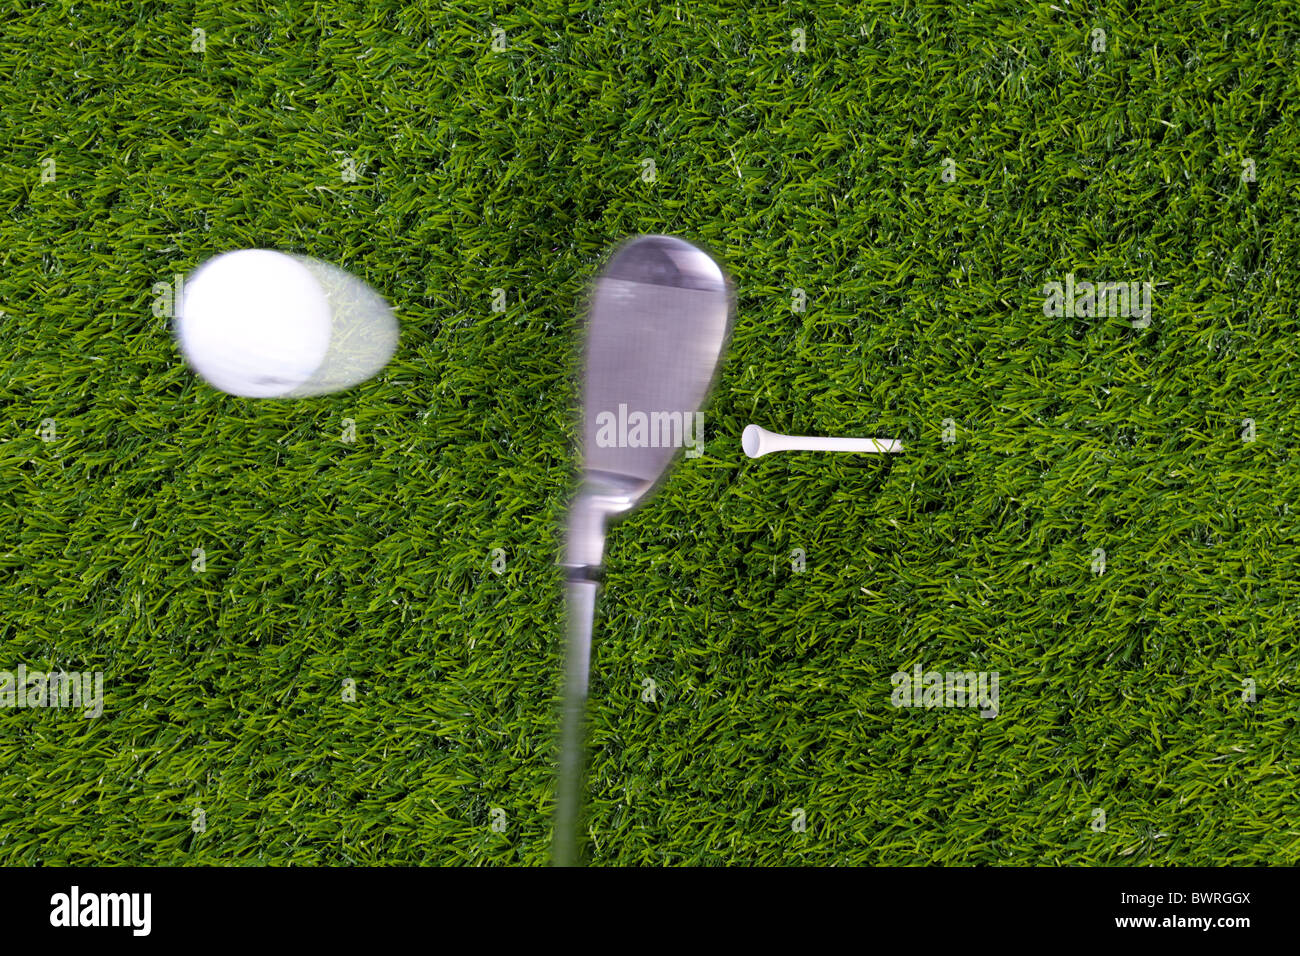 Photo of an iron hitting a golf ball off the tee with motion blur on the club and ball. Actual shot not photoshopped - Stock Image